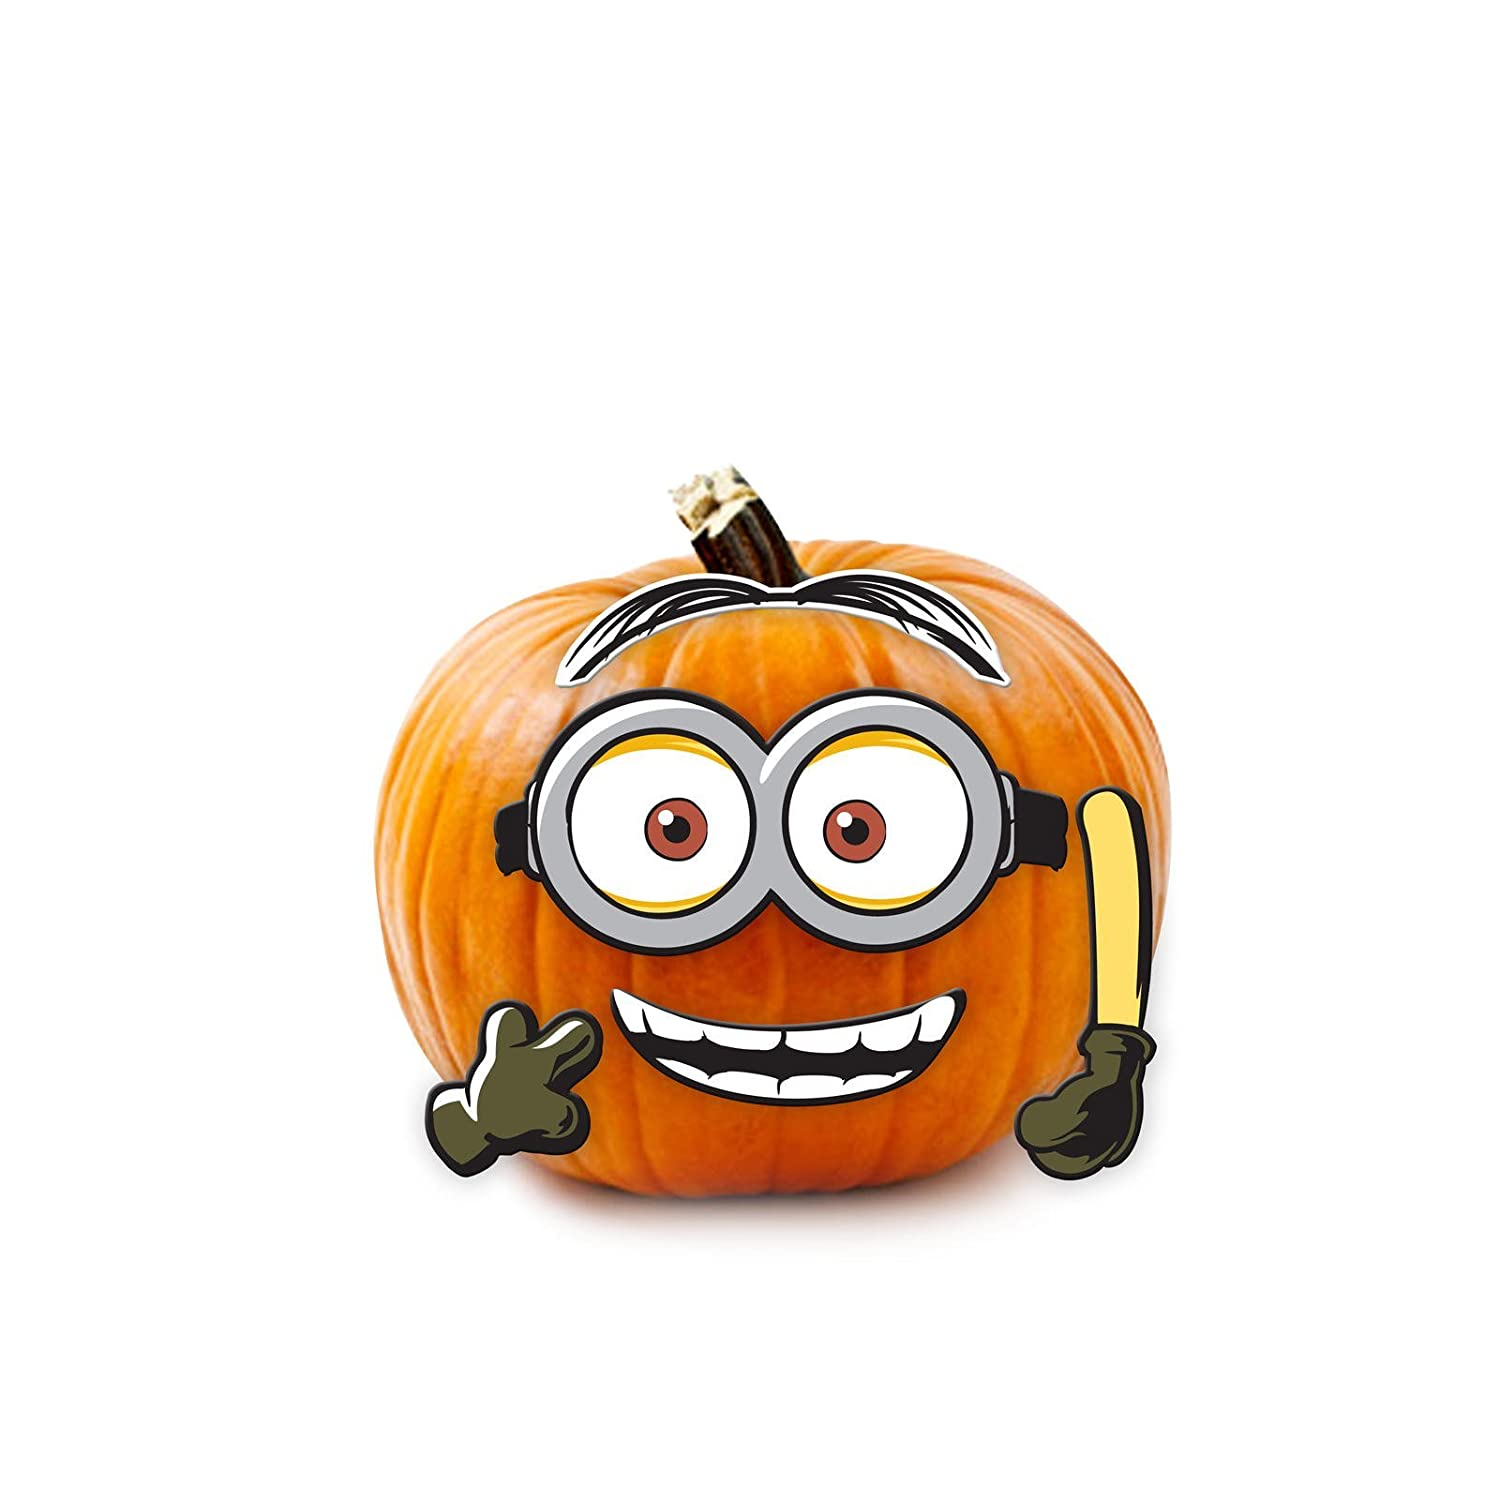 minions movie despicable me halloween wood pumpkin push in 5 pieces used to transform pumpkins into childrens favorite characters without the mess of